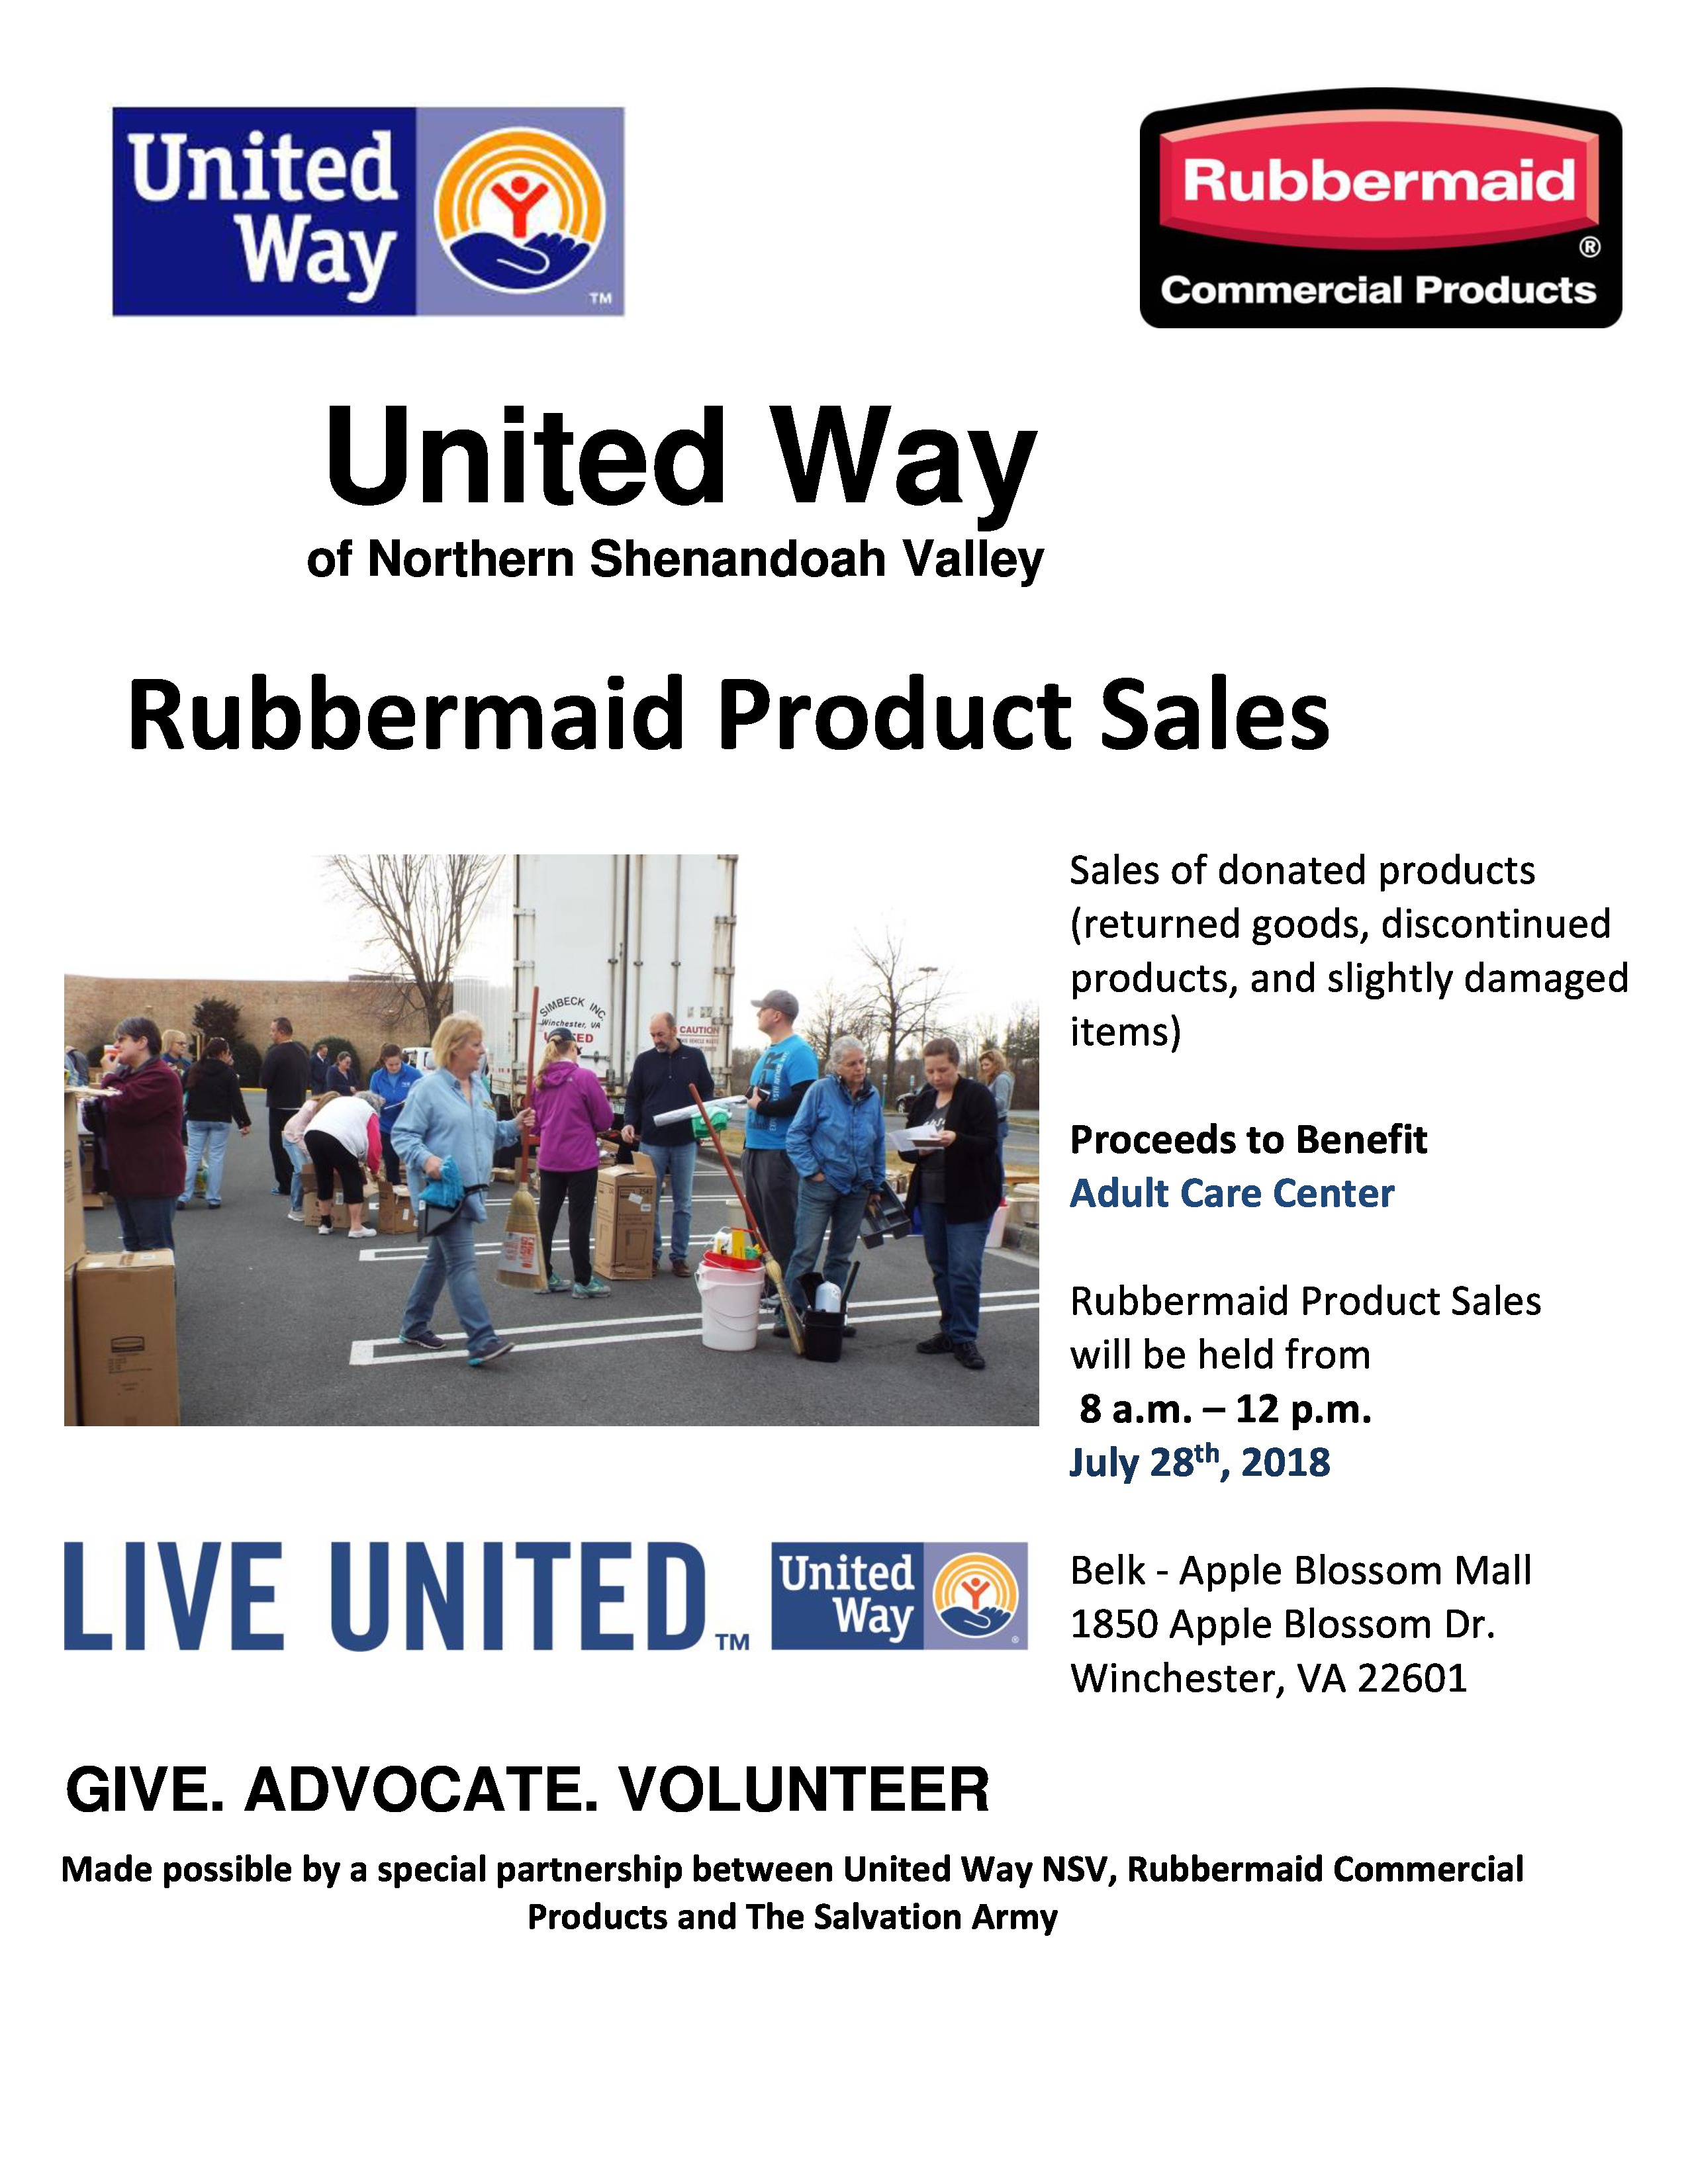 Rubbermaid flyer 7.28.18 (1)-page-0